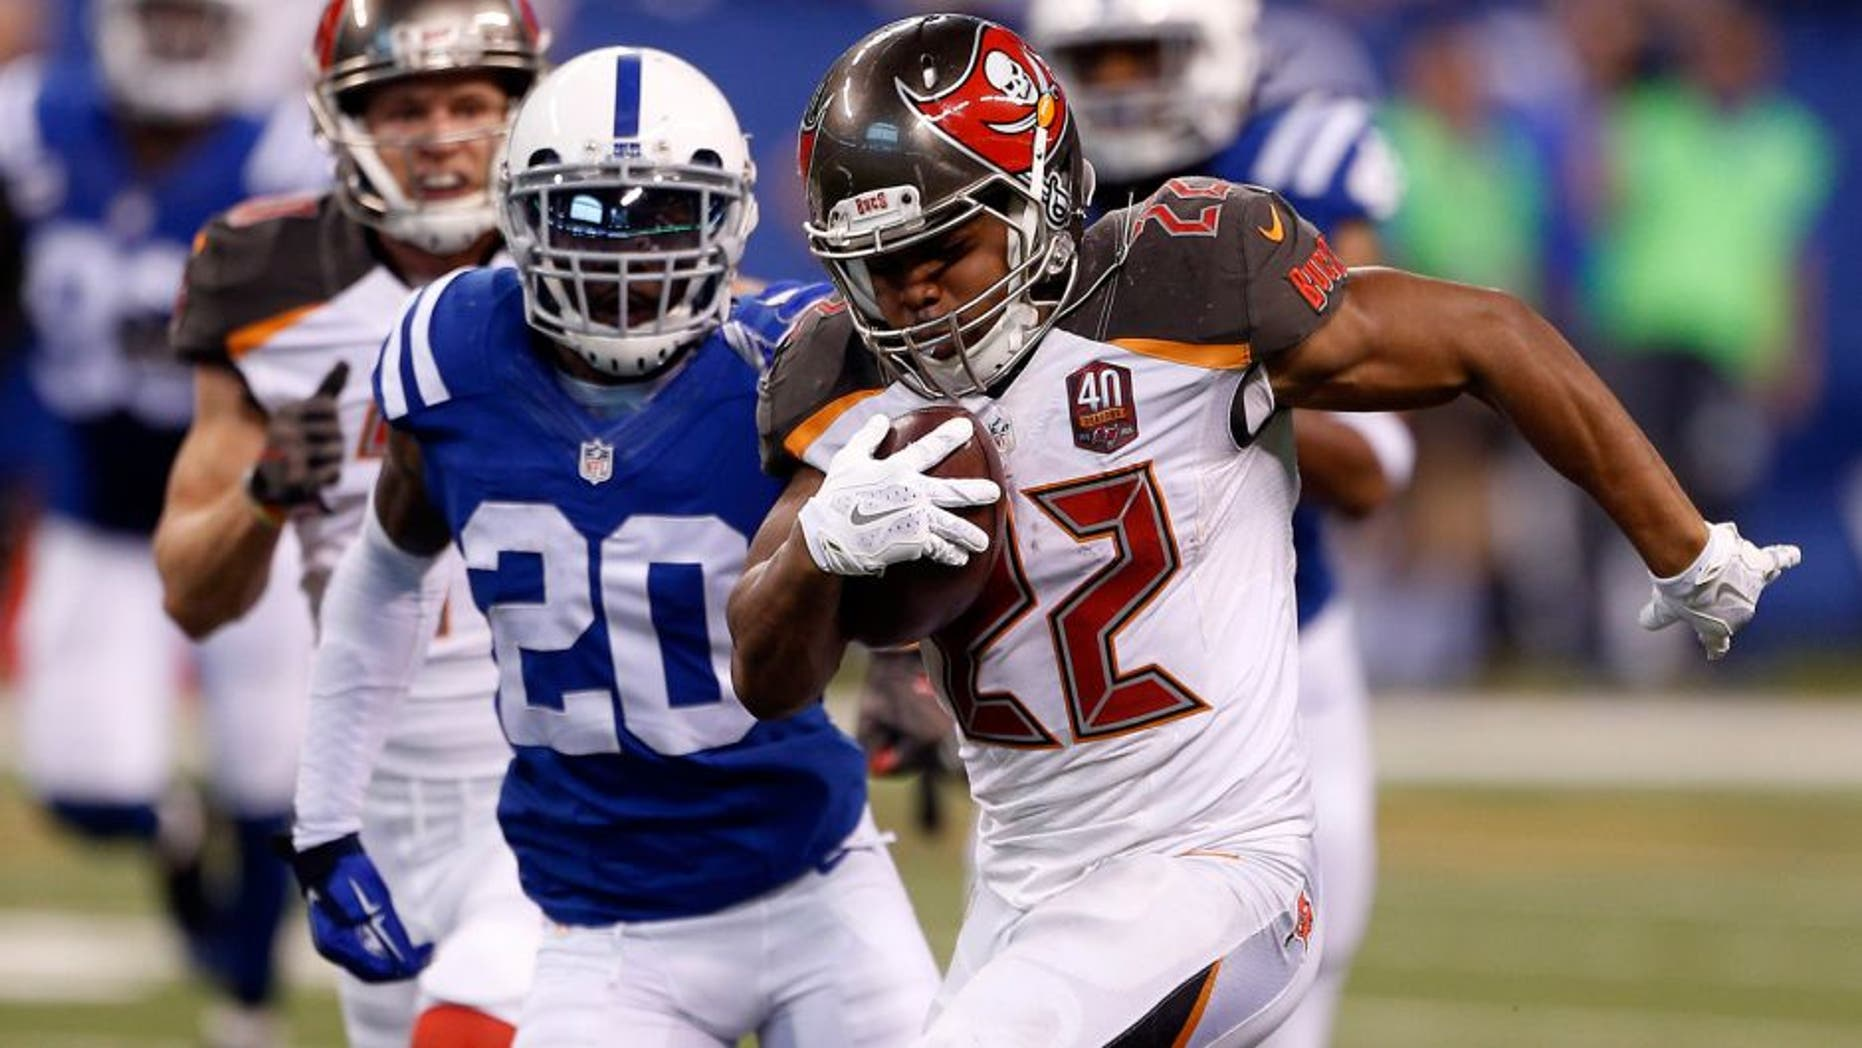 Nov 29, 2015; Indianapolis, IN, USA; Tampa Bay Buccaneers running back Doug Martin (22) is tackled by Indianapolis Colts cornerback Darius Butler (20) at Lucas Oil Stadium. Mandatory Credit: Brian Spurlock-USA TODAY Sports